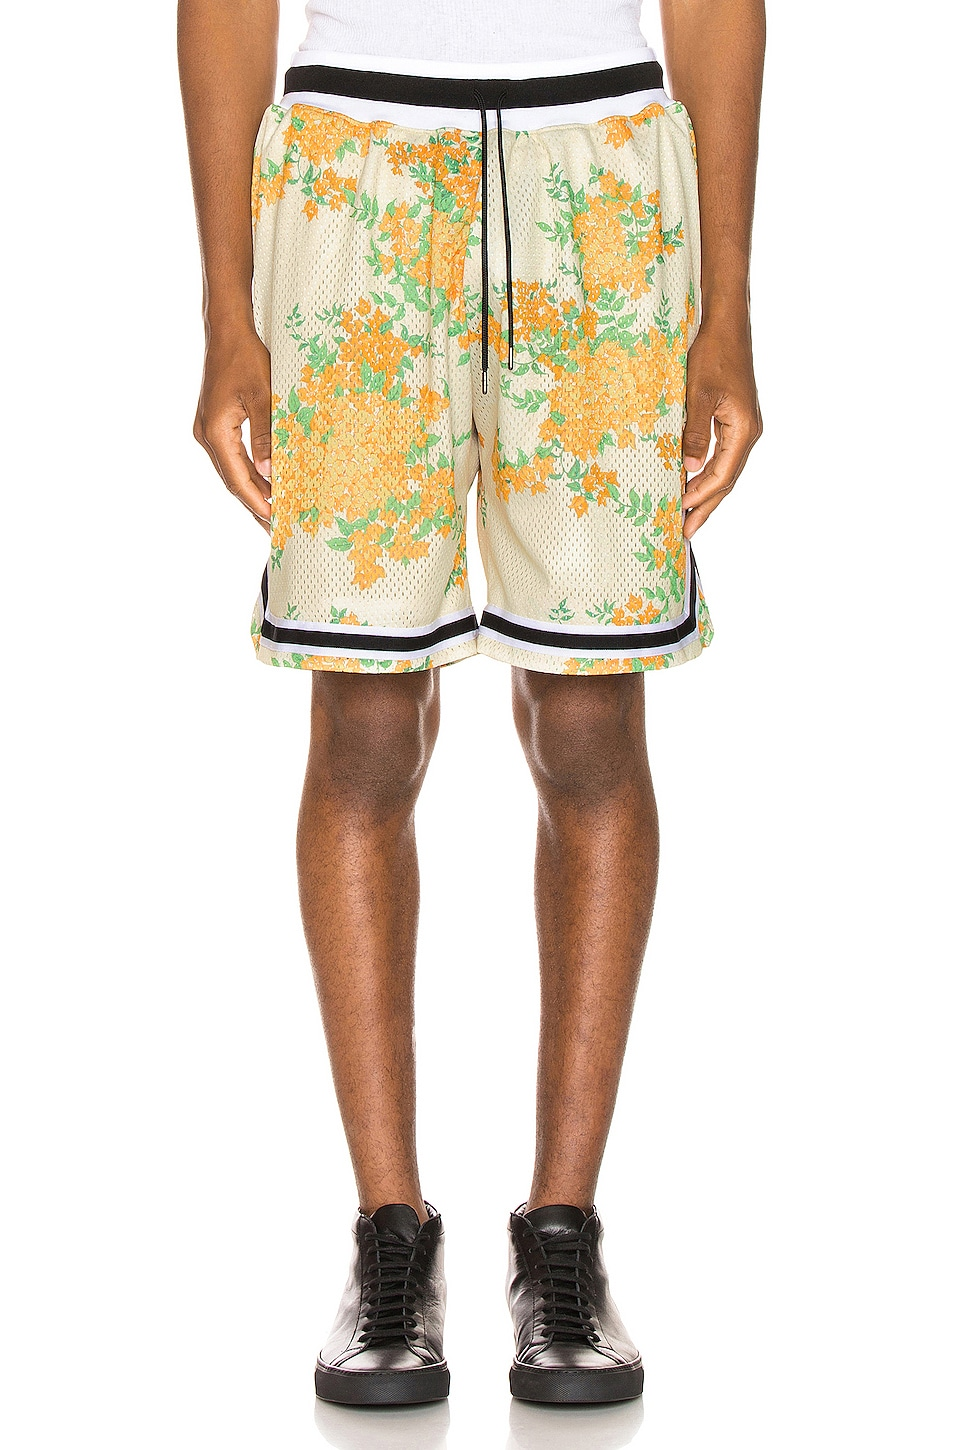 JOHN ELLIOTT Basketball Shorts in Ivory Bougainvillea